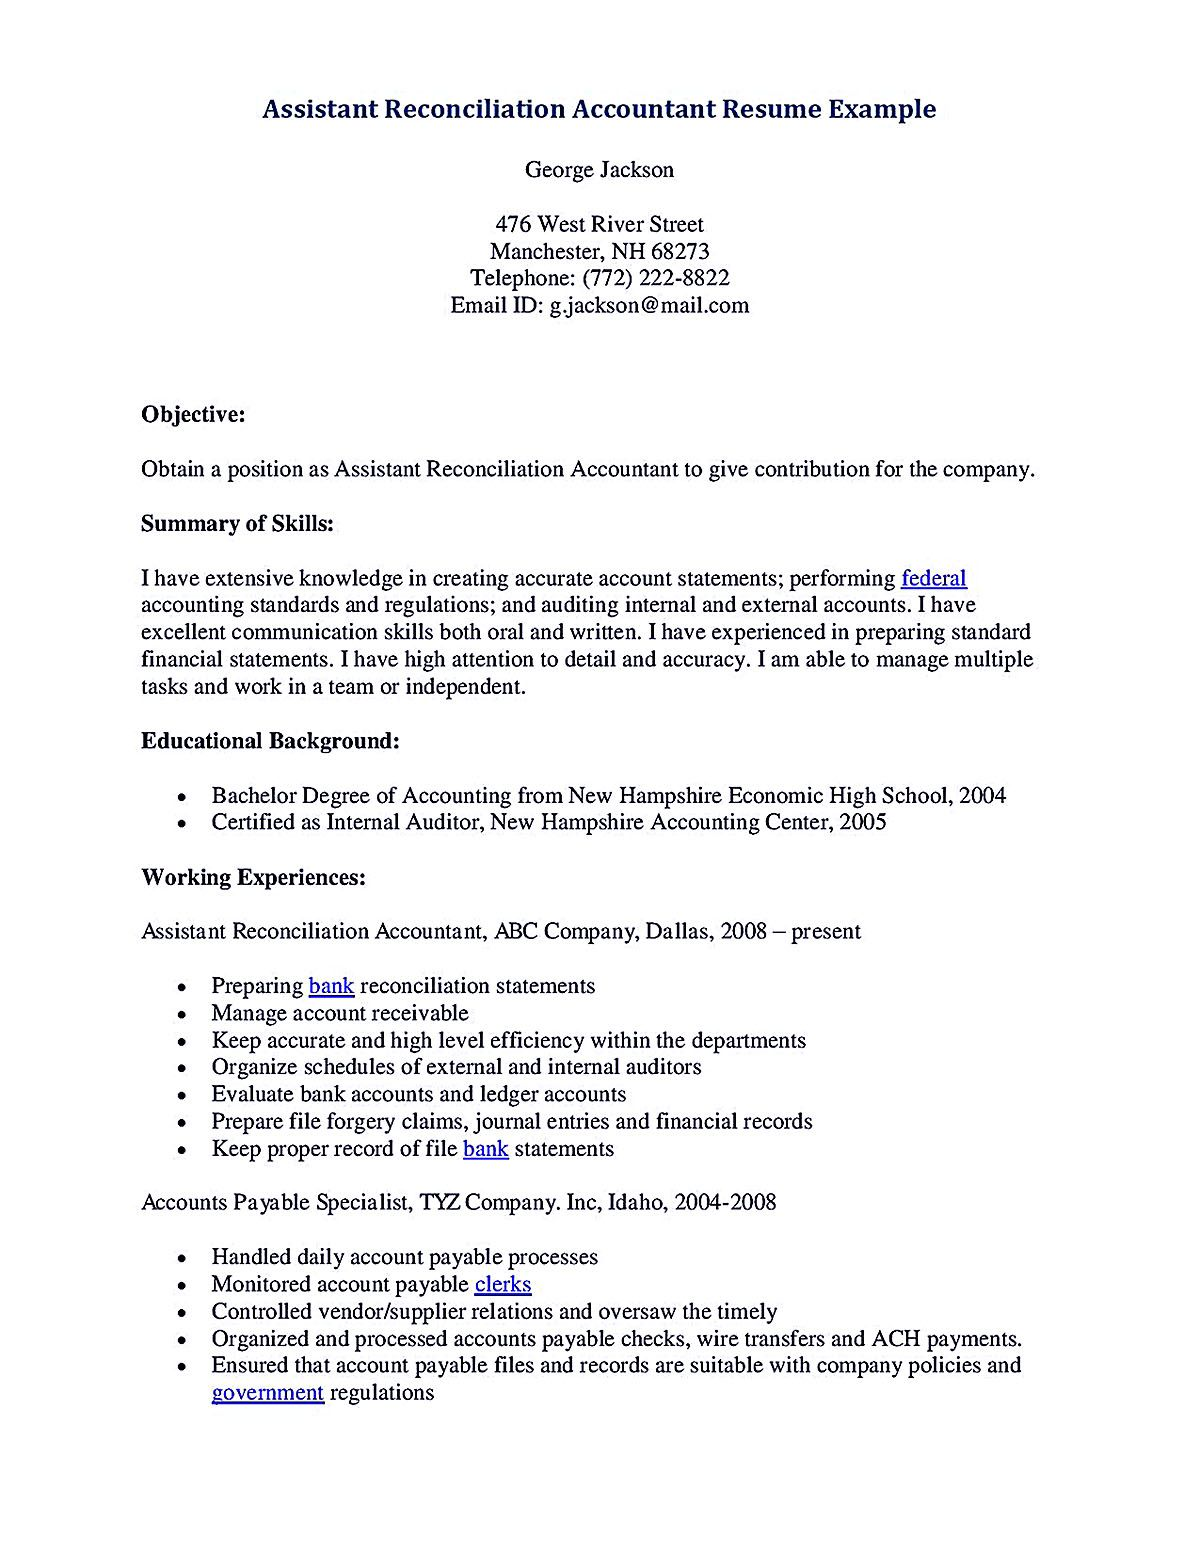 Accounting Resume Objective Resume For Accounting Assistant Whether Or Not Accounting